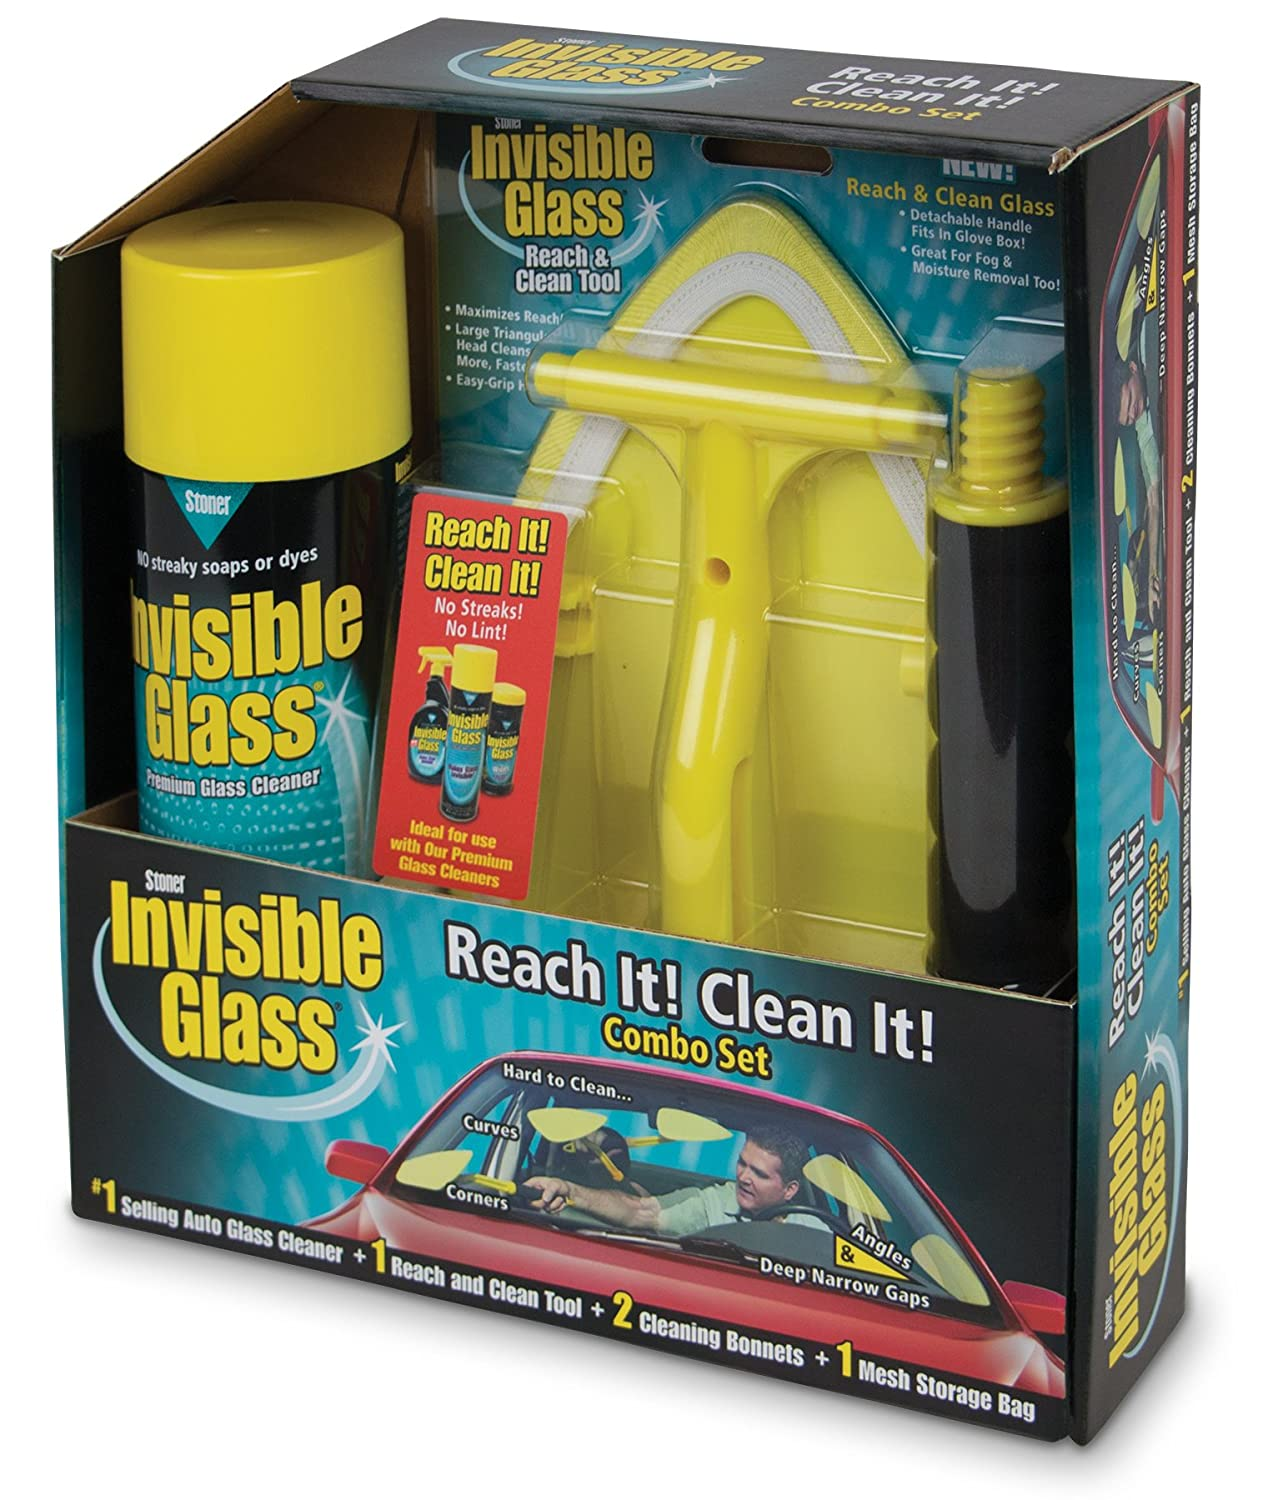 Invisible Glass 99031 Reach and Clean Tool Combo Kit - Window Wand Glass Cleaning Tool for Windshields, Invisible Glass Cleaner for Auto Glass, Clean and Reach Tool for Hard-to-Reach Places